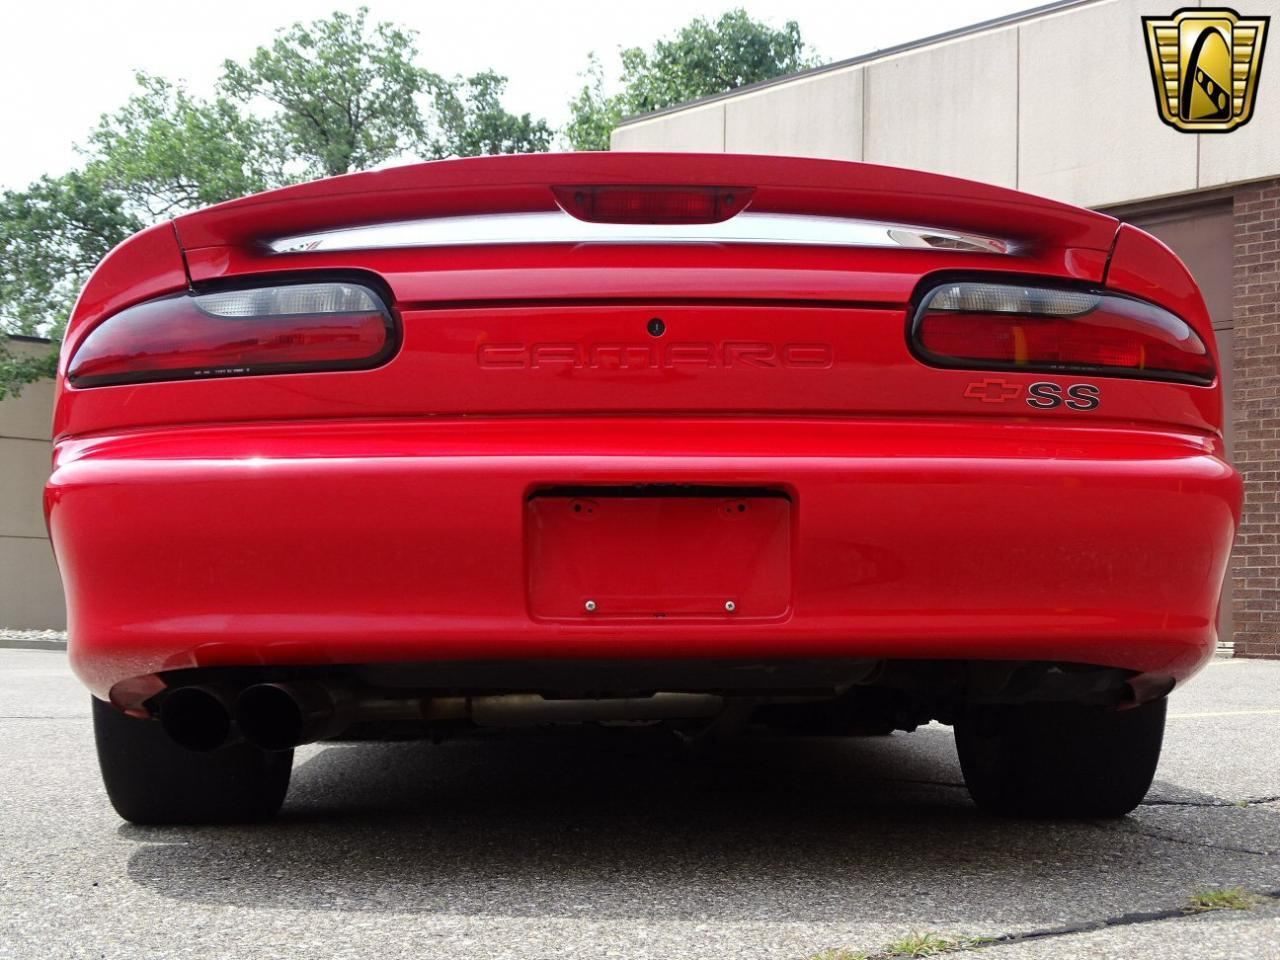 Large Picture of '96 Chevrolet Camaro located in Dearborn Michigan Offered by Gateway Classic Cars - Detroit - LDUP